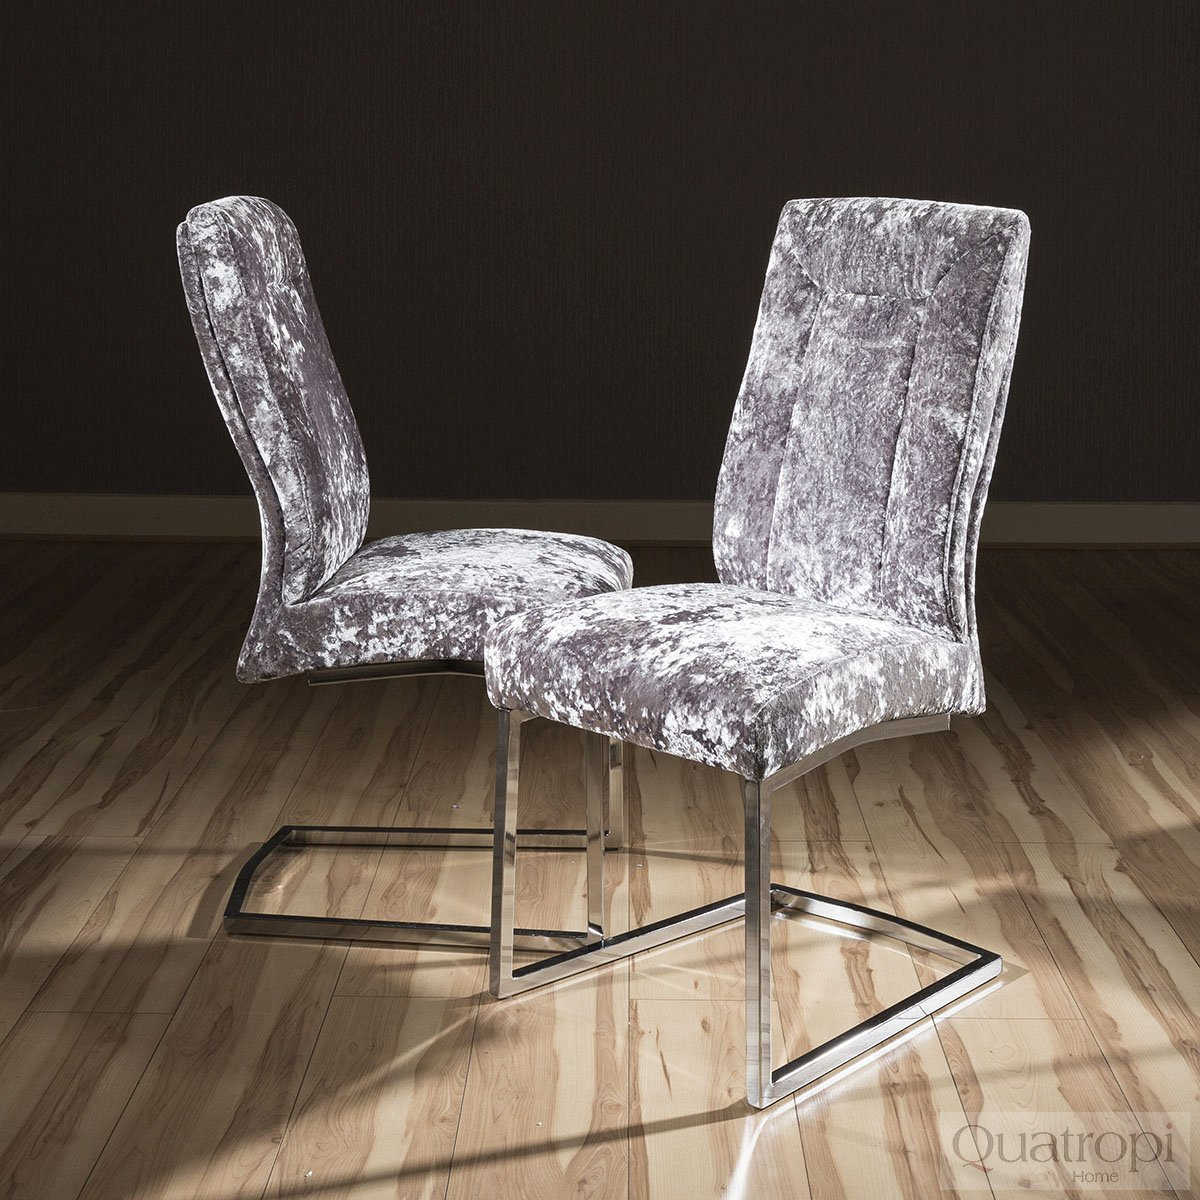 crushed velvet chair shaker ladder back set of 2 large super comfy modern dining chairs silver